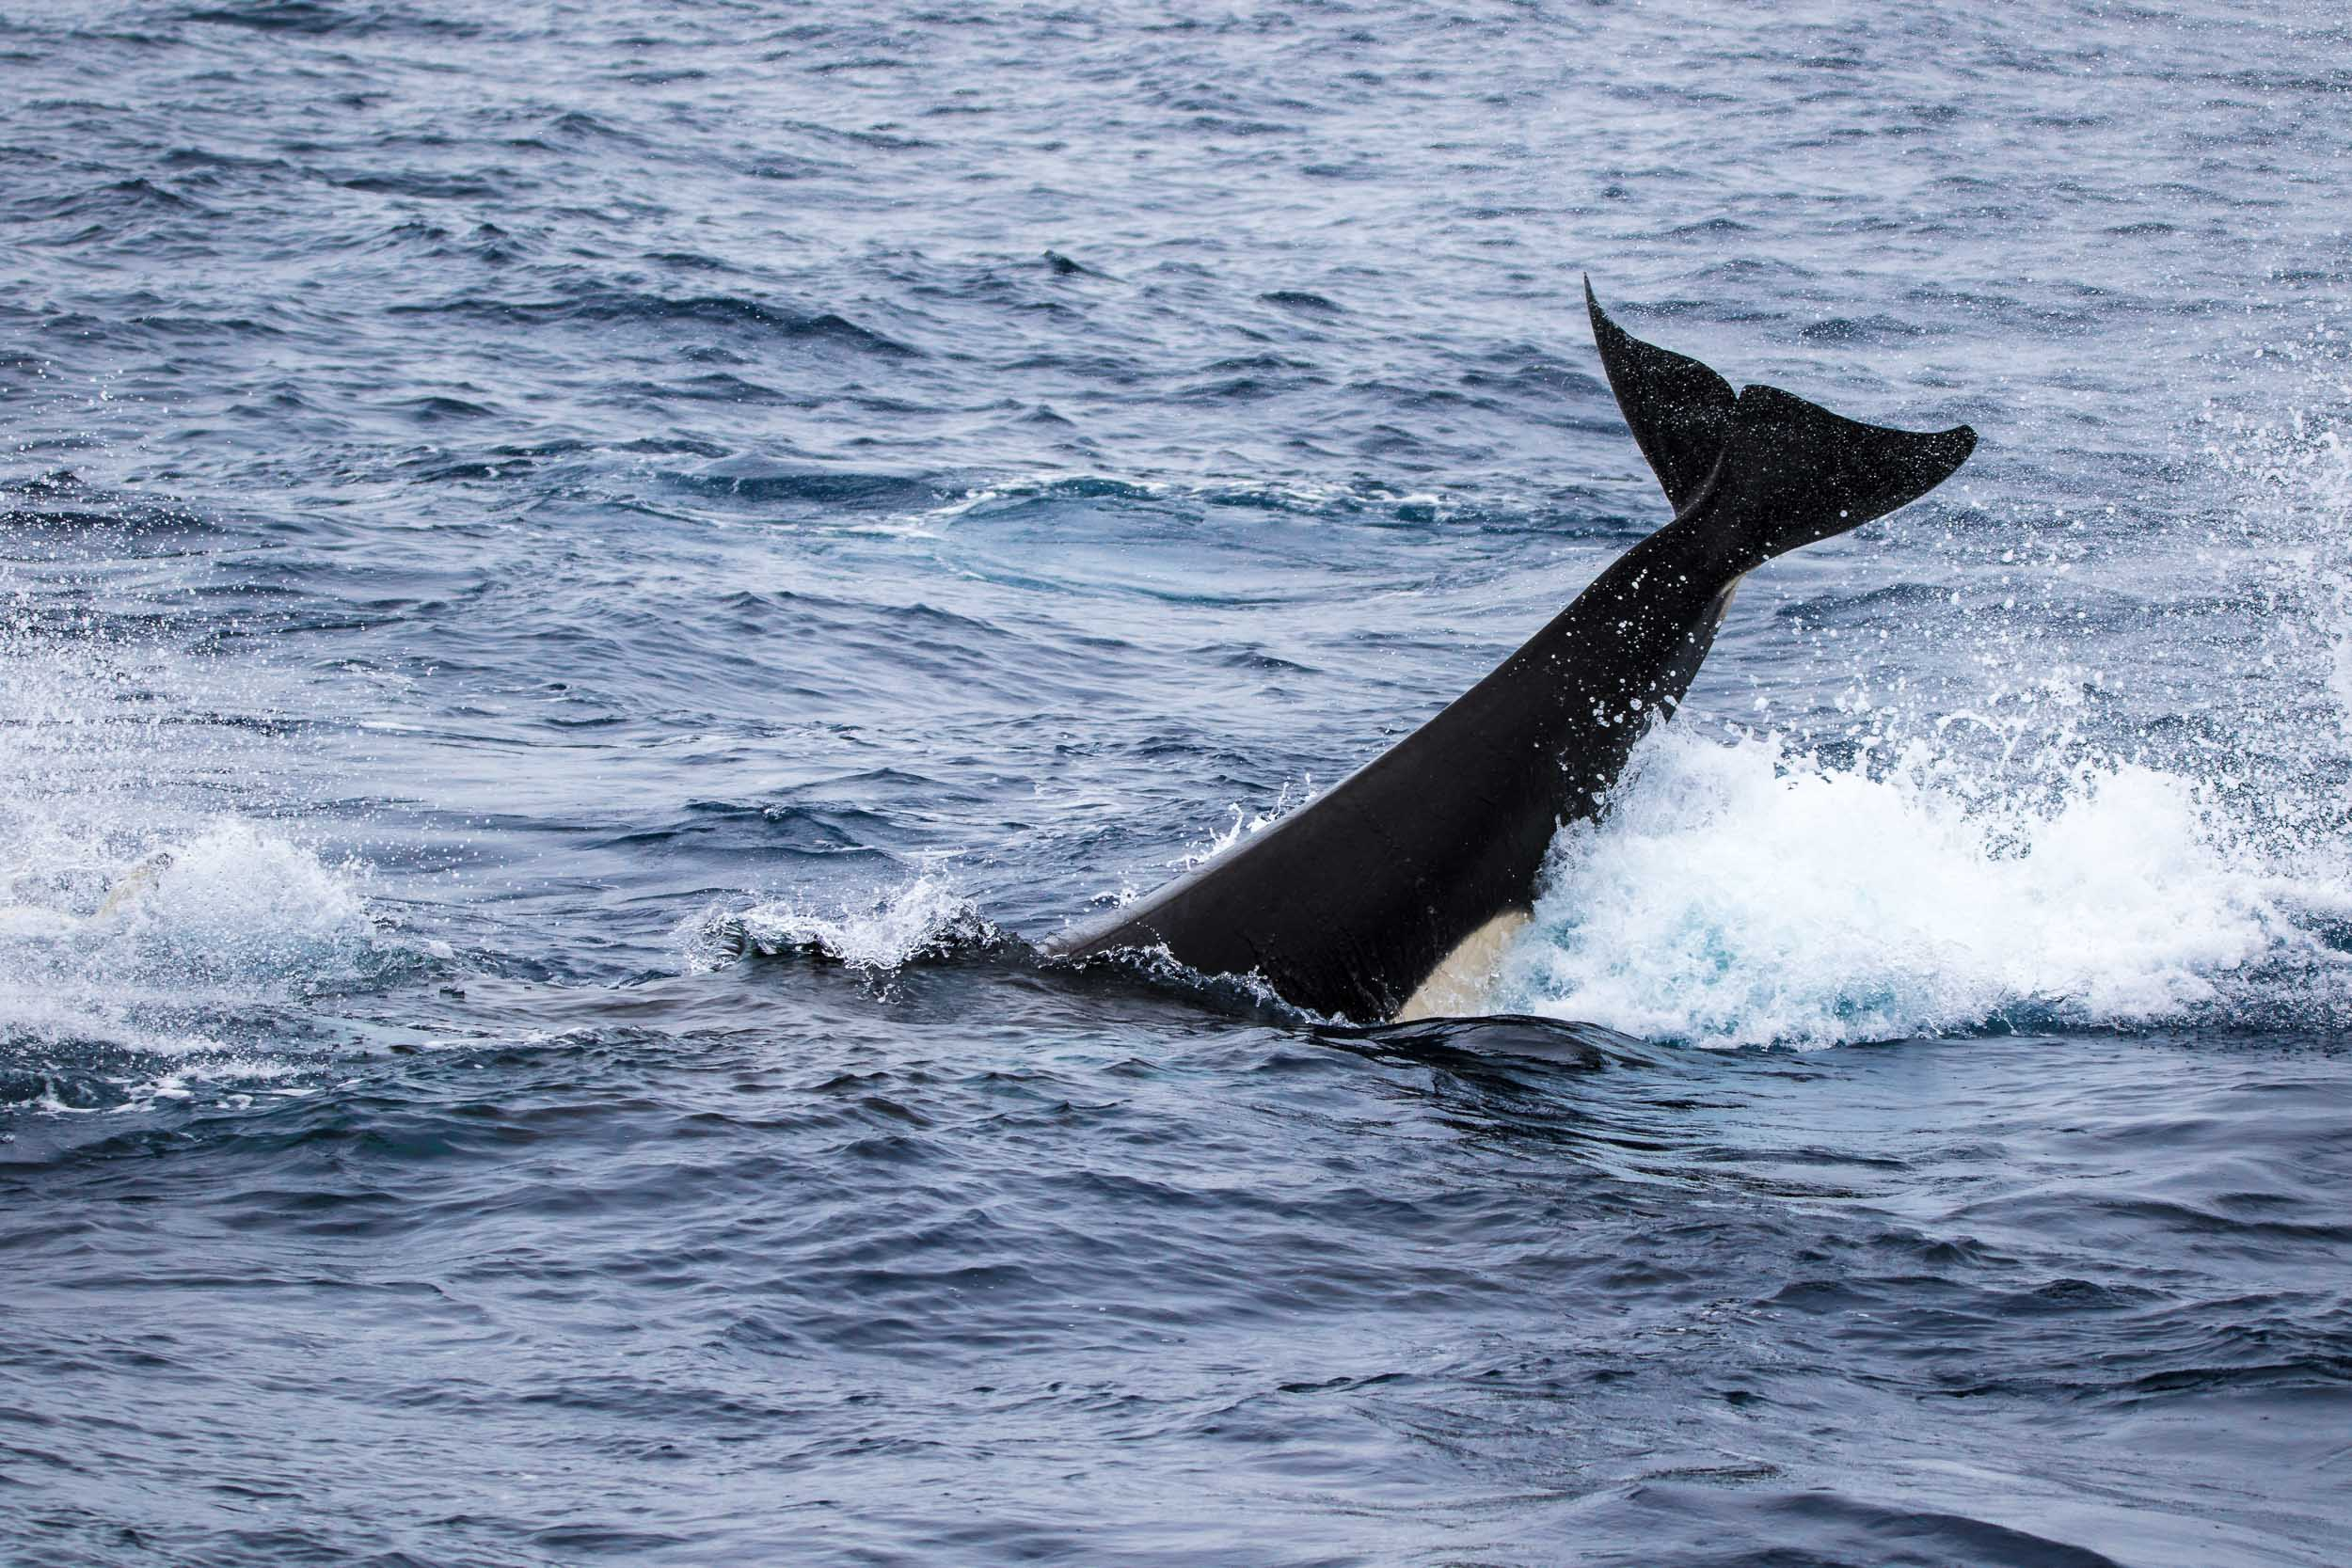 Killer whale tail slap, Bremer Bay, Western Australia 4